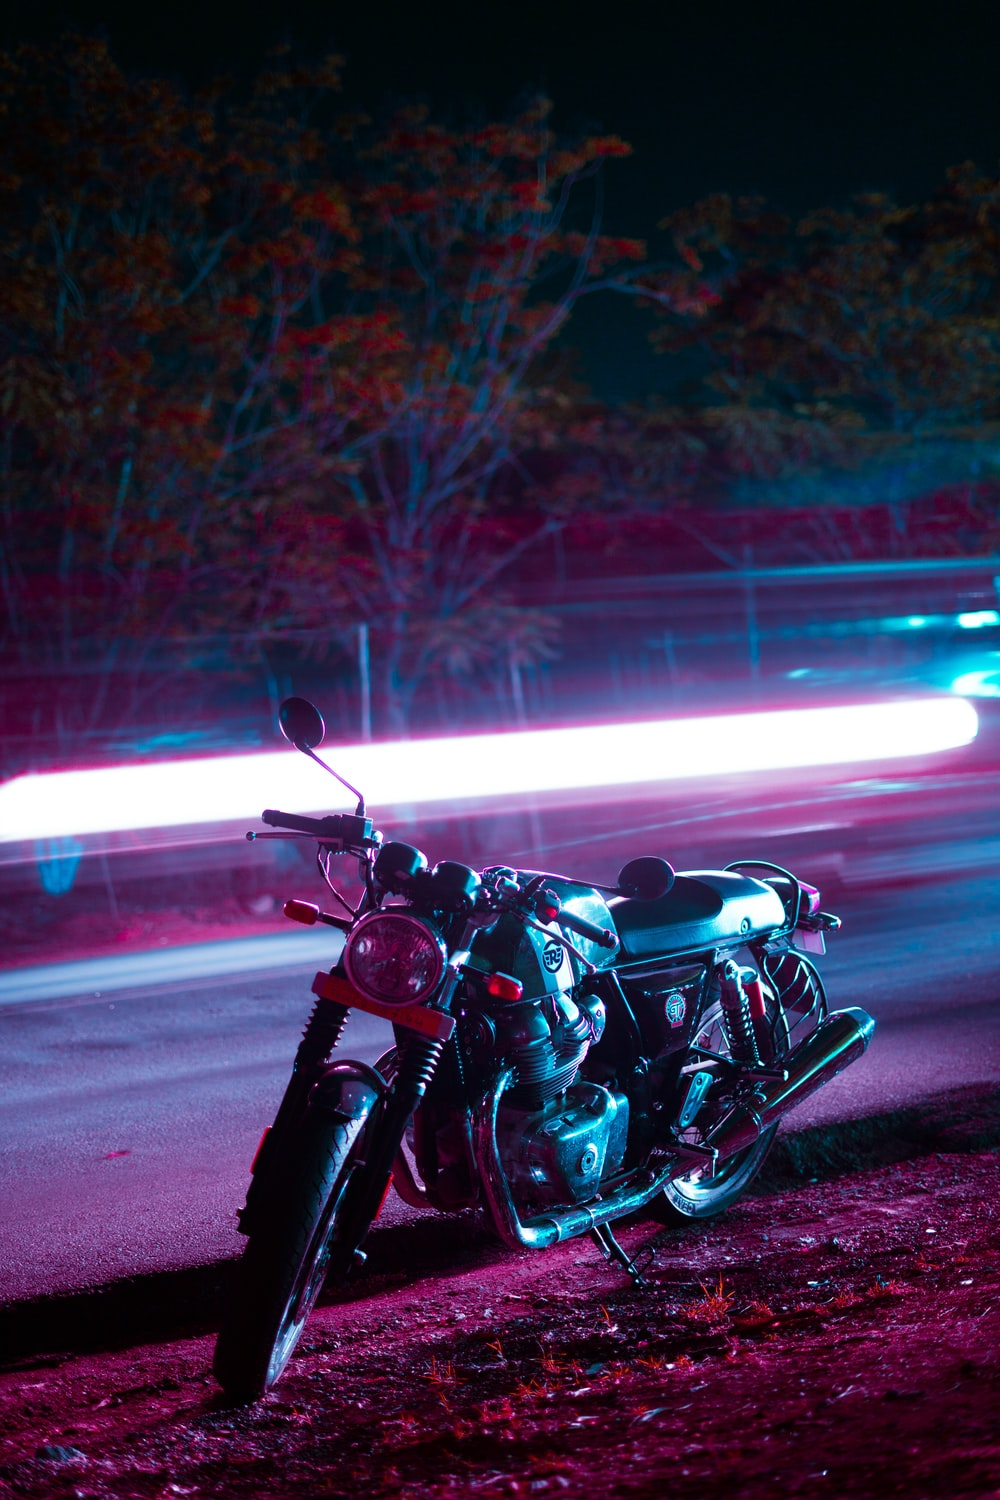 black and silver cruiser motorcycle on road during night time